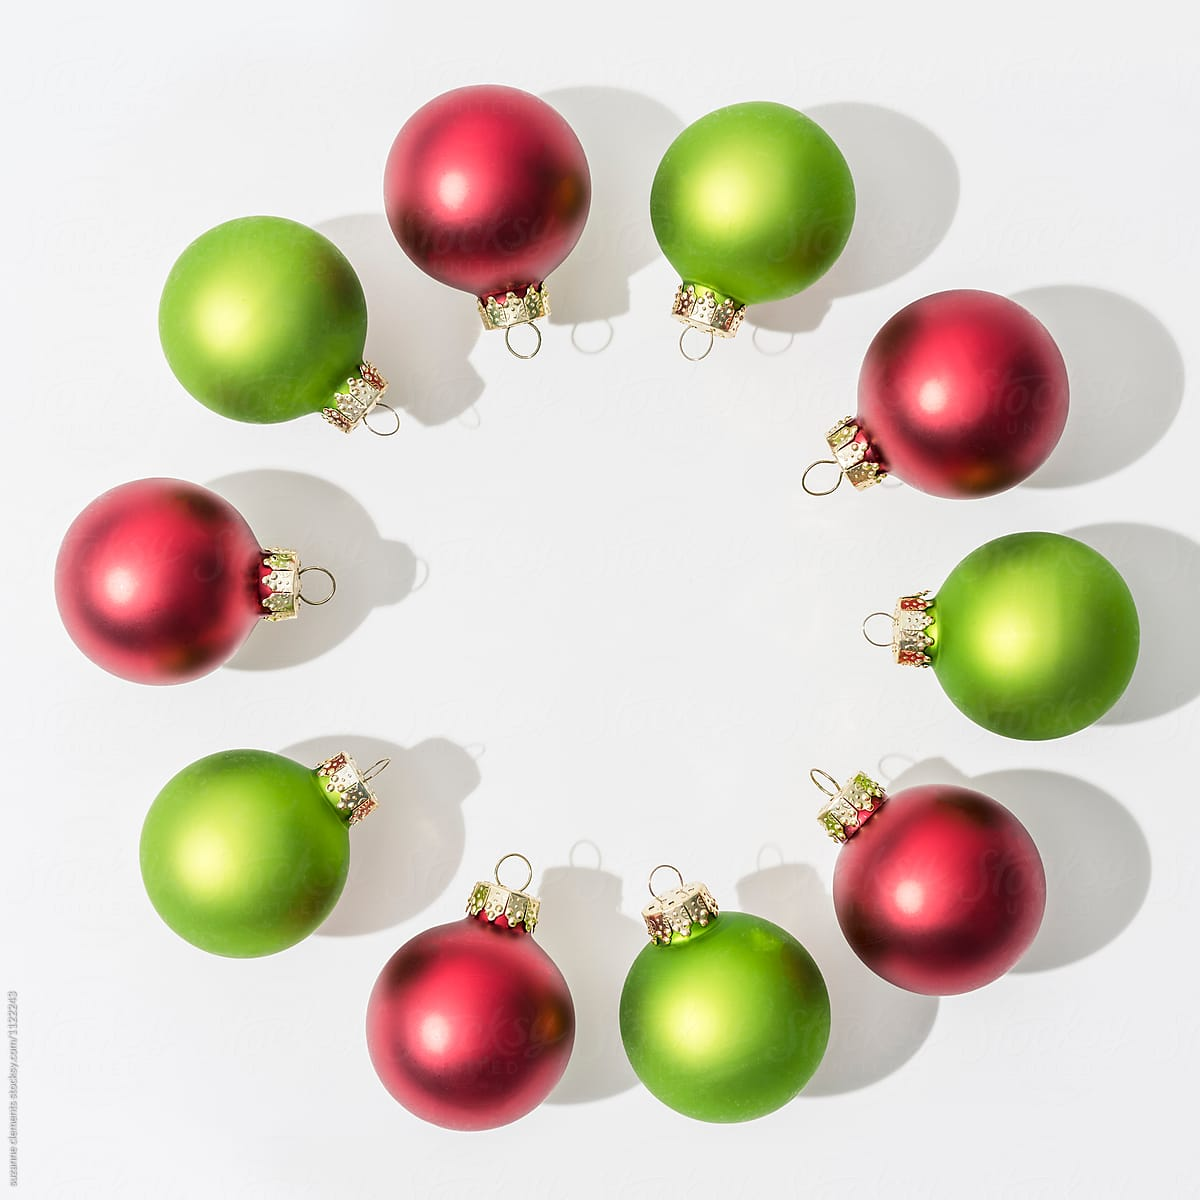 festive red and green glass christmas ornaments by suzanne clements for stocksy united - Glass Christmas Ornaments